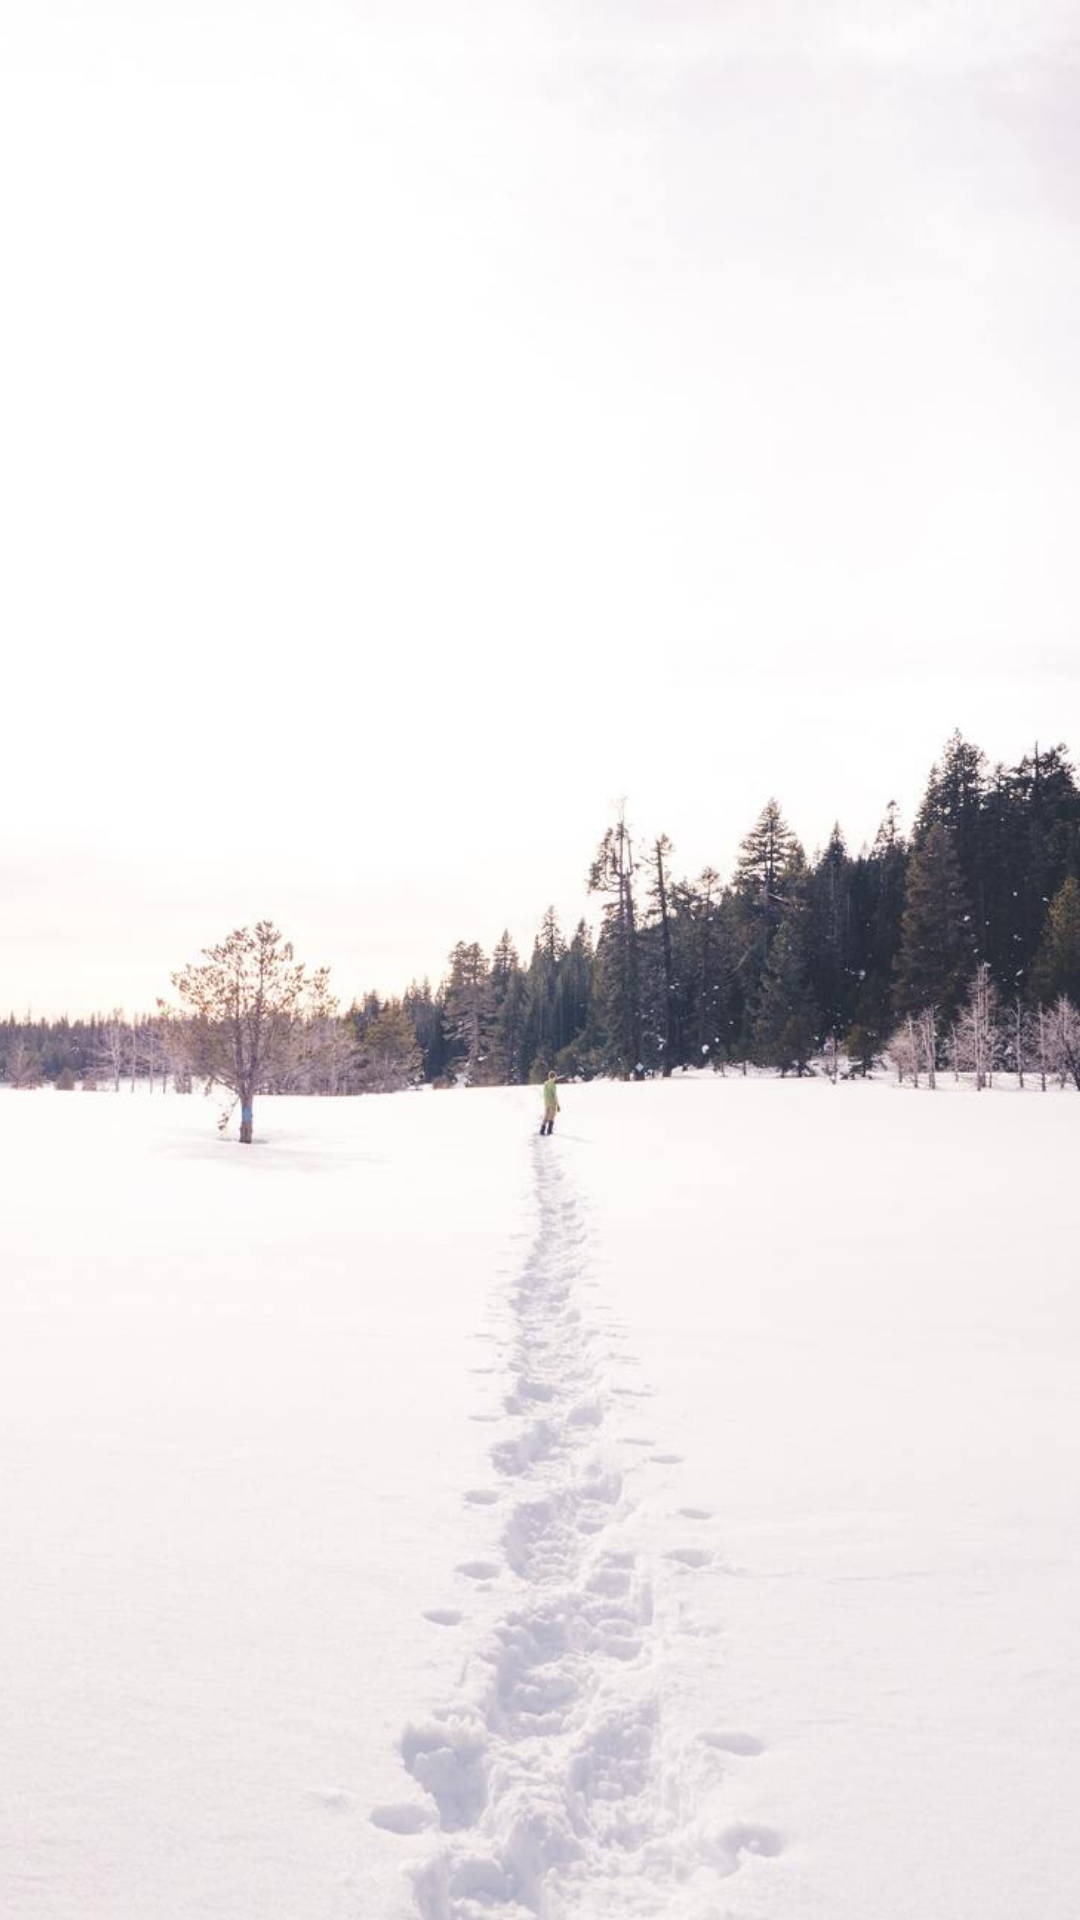 Snowshoe image link to Outdoor Guide Snowshoeing 101